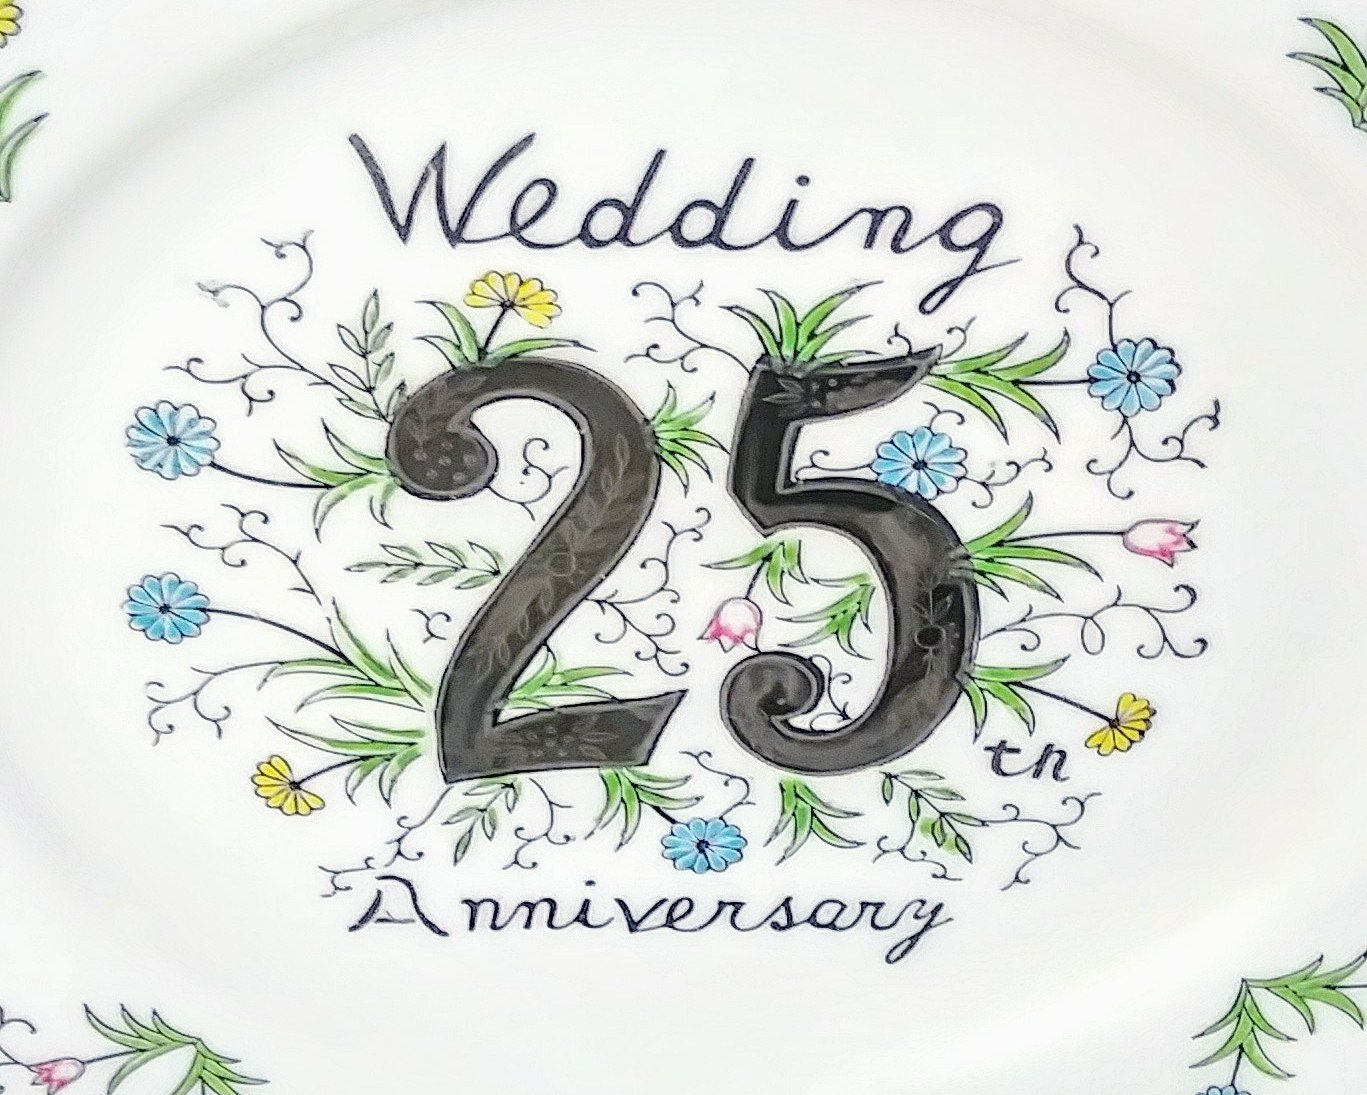 Silver Wedding Anniversary Gifts For Parents: Vintage 25th Wedding Anniversary Collectors Plate, Silver